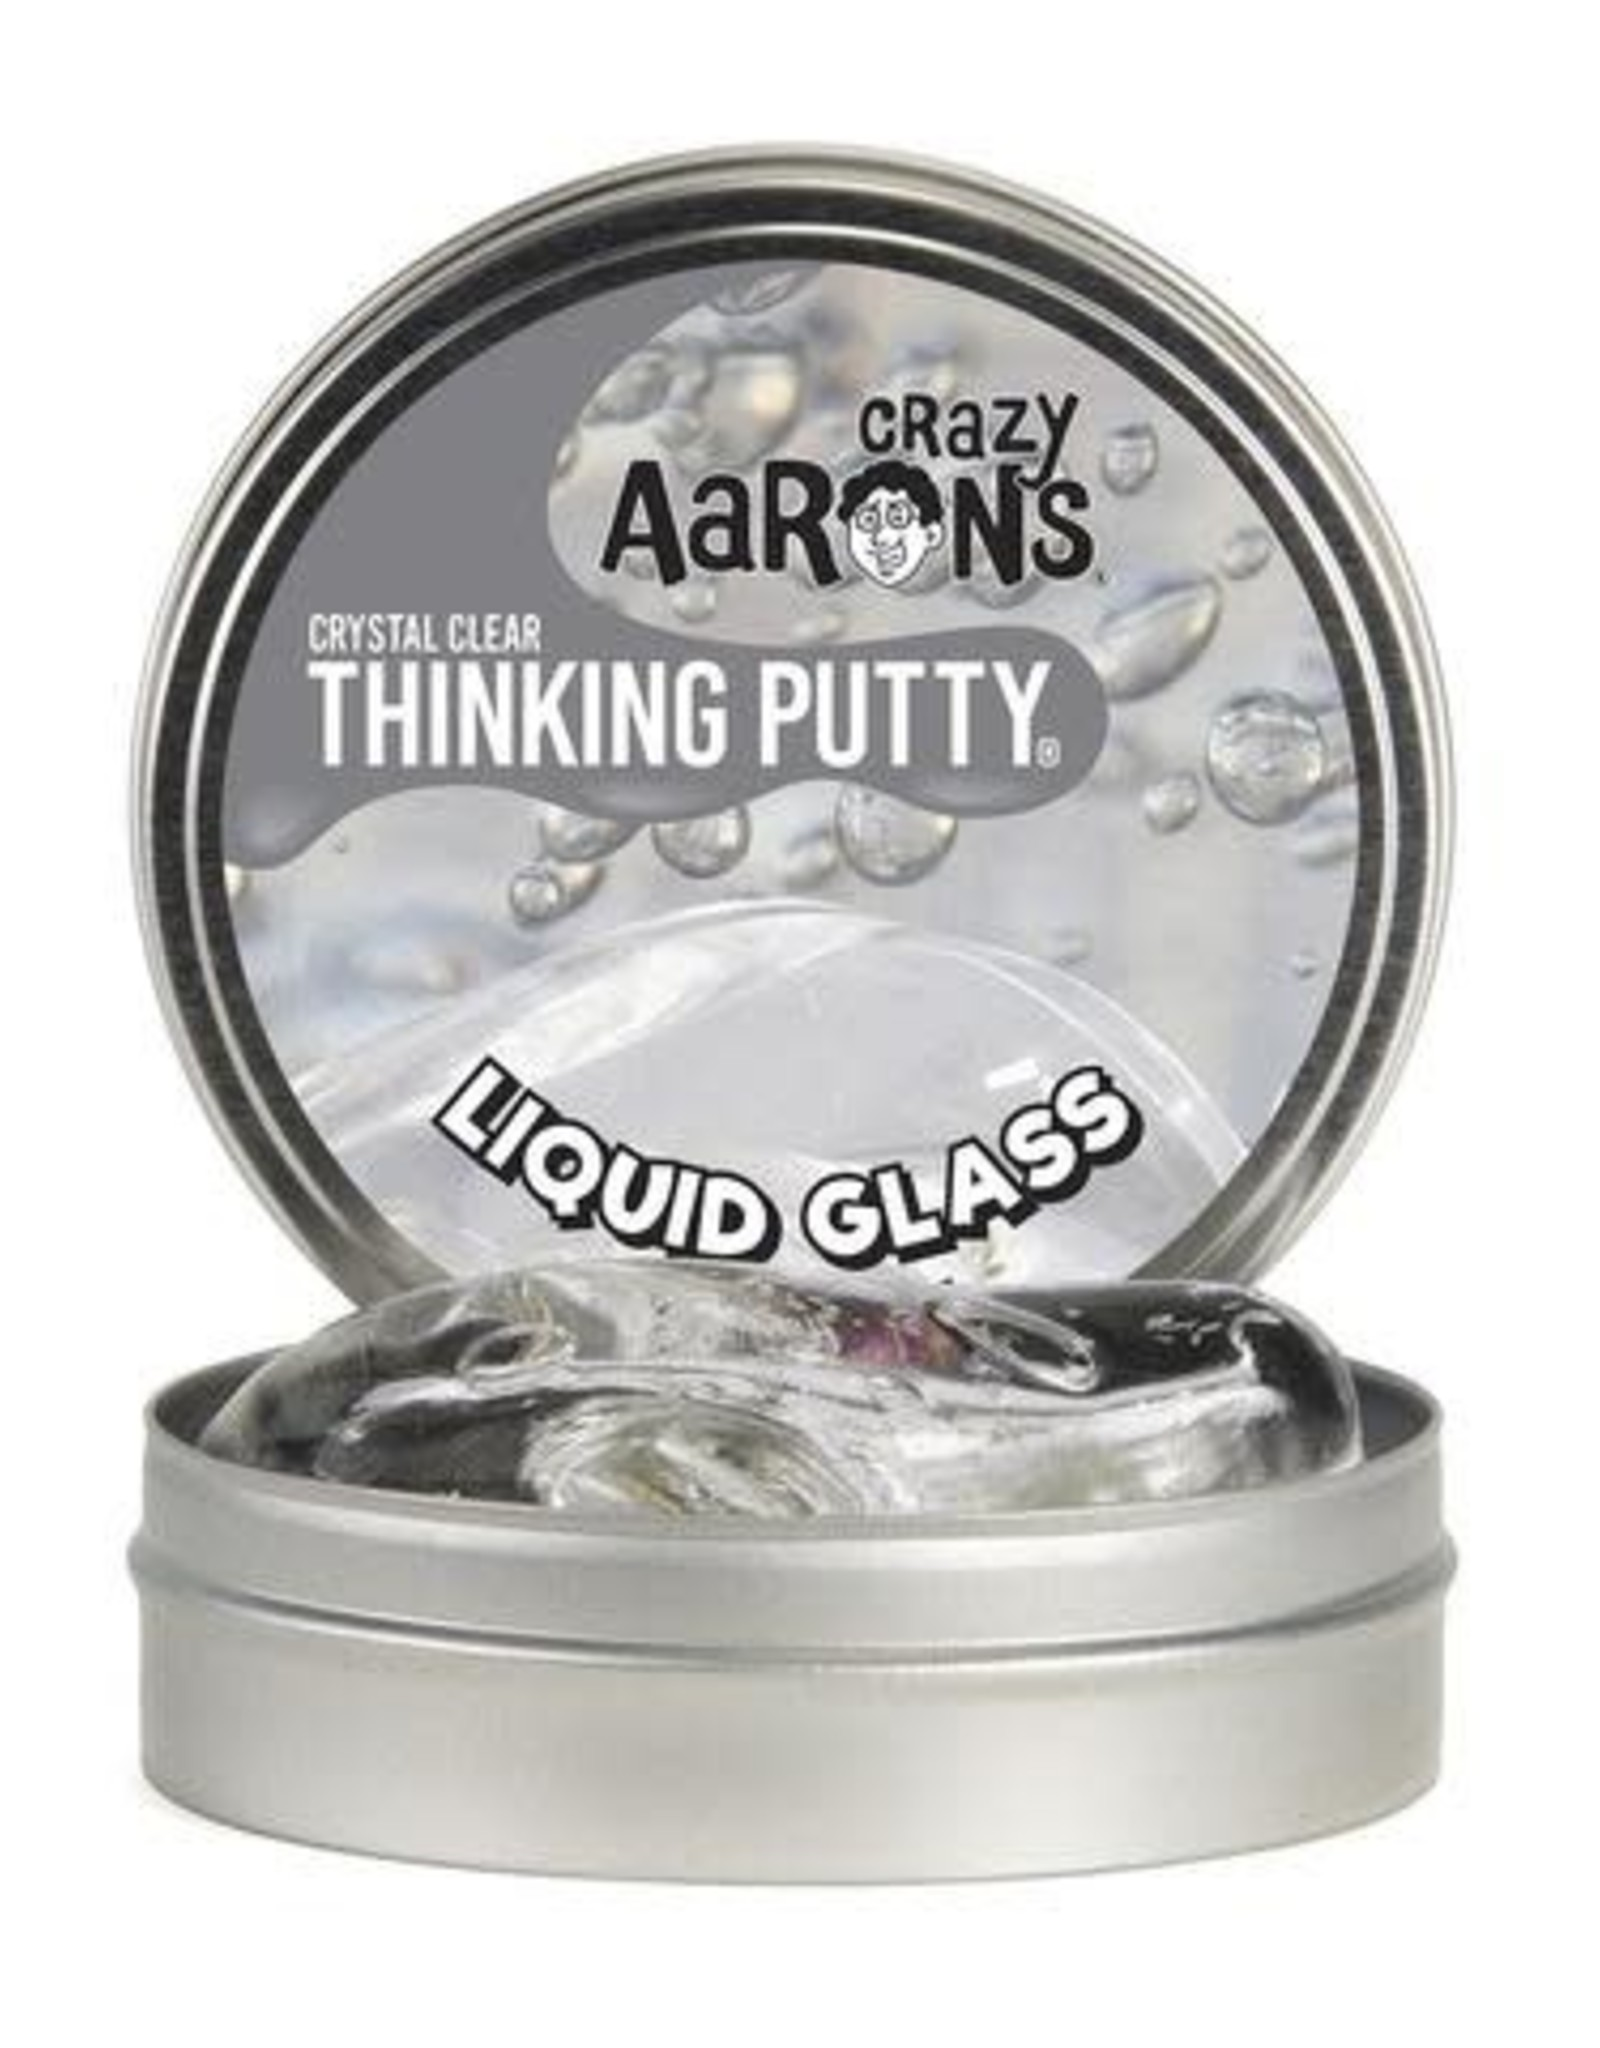 Crazy Aaron's Putty Liquid Glass